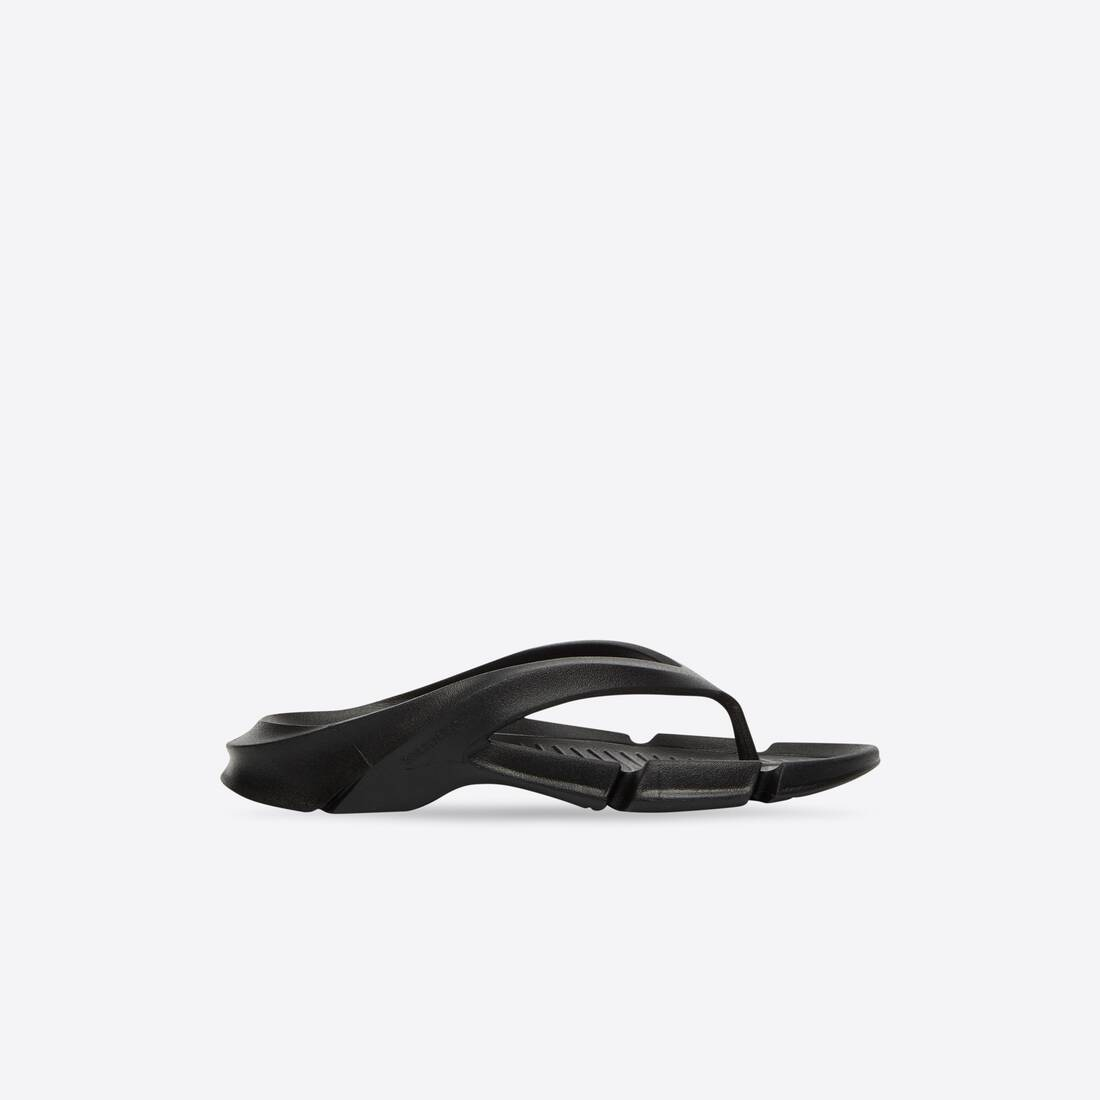 Display zoomed version of mold thong sandal 1